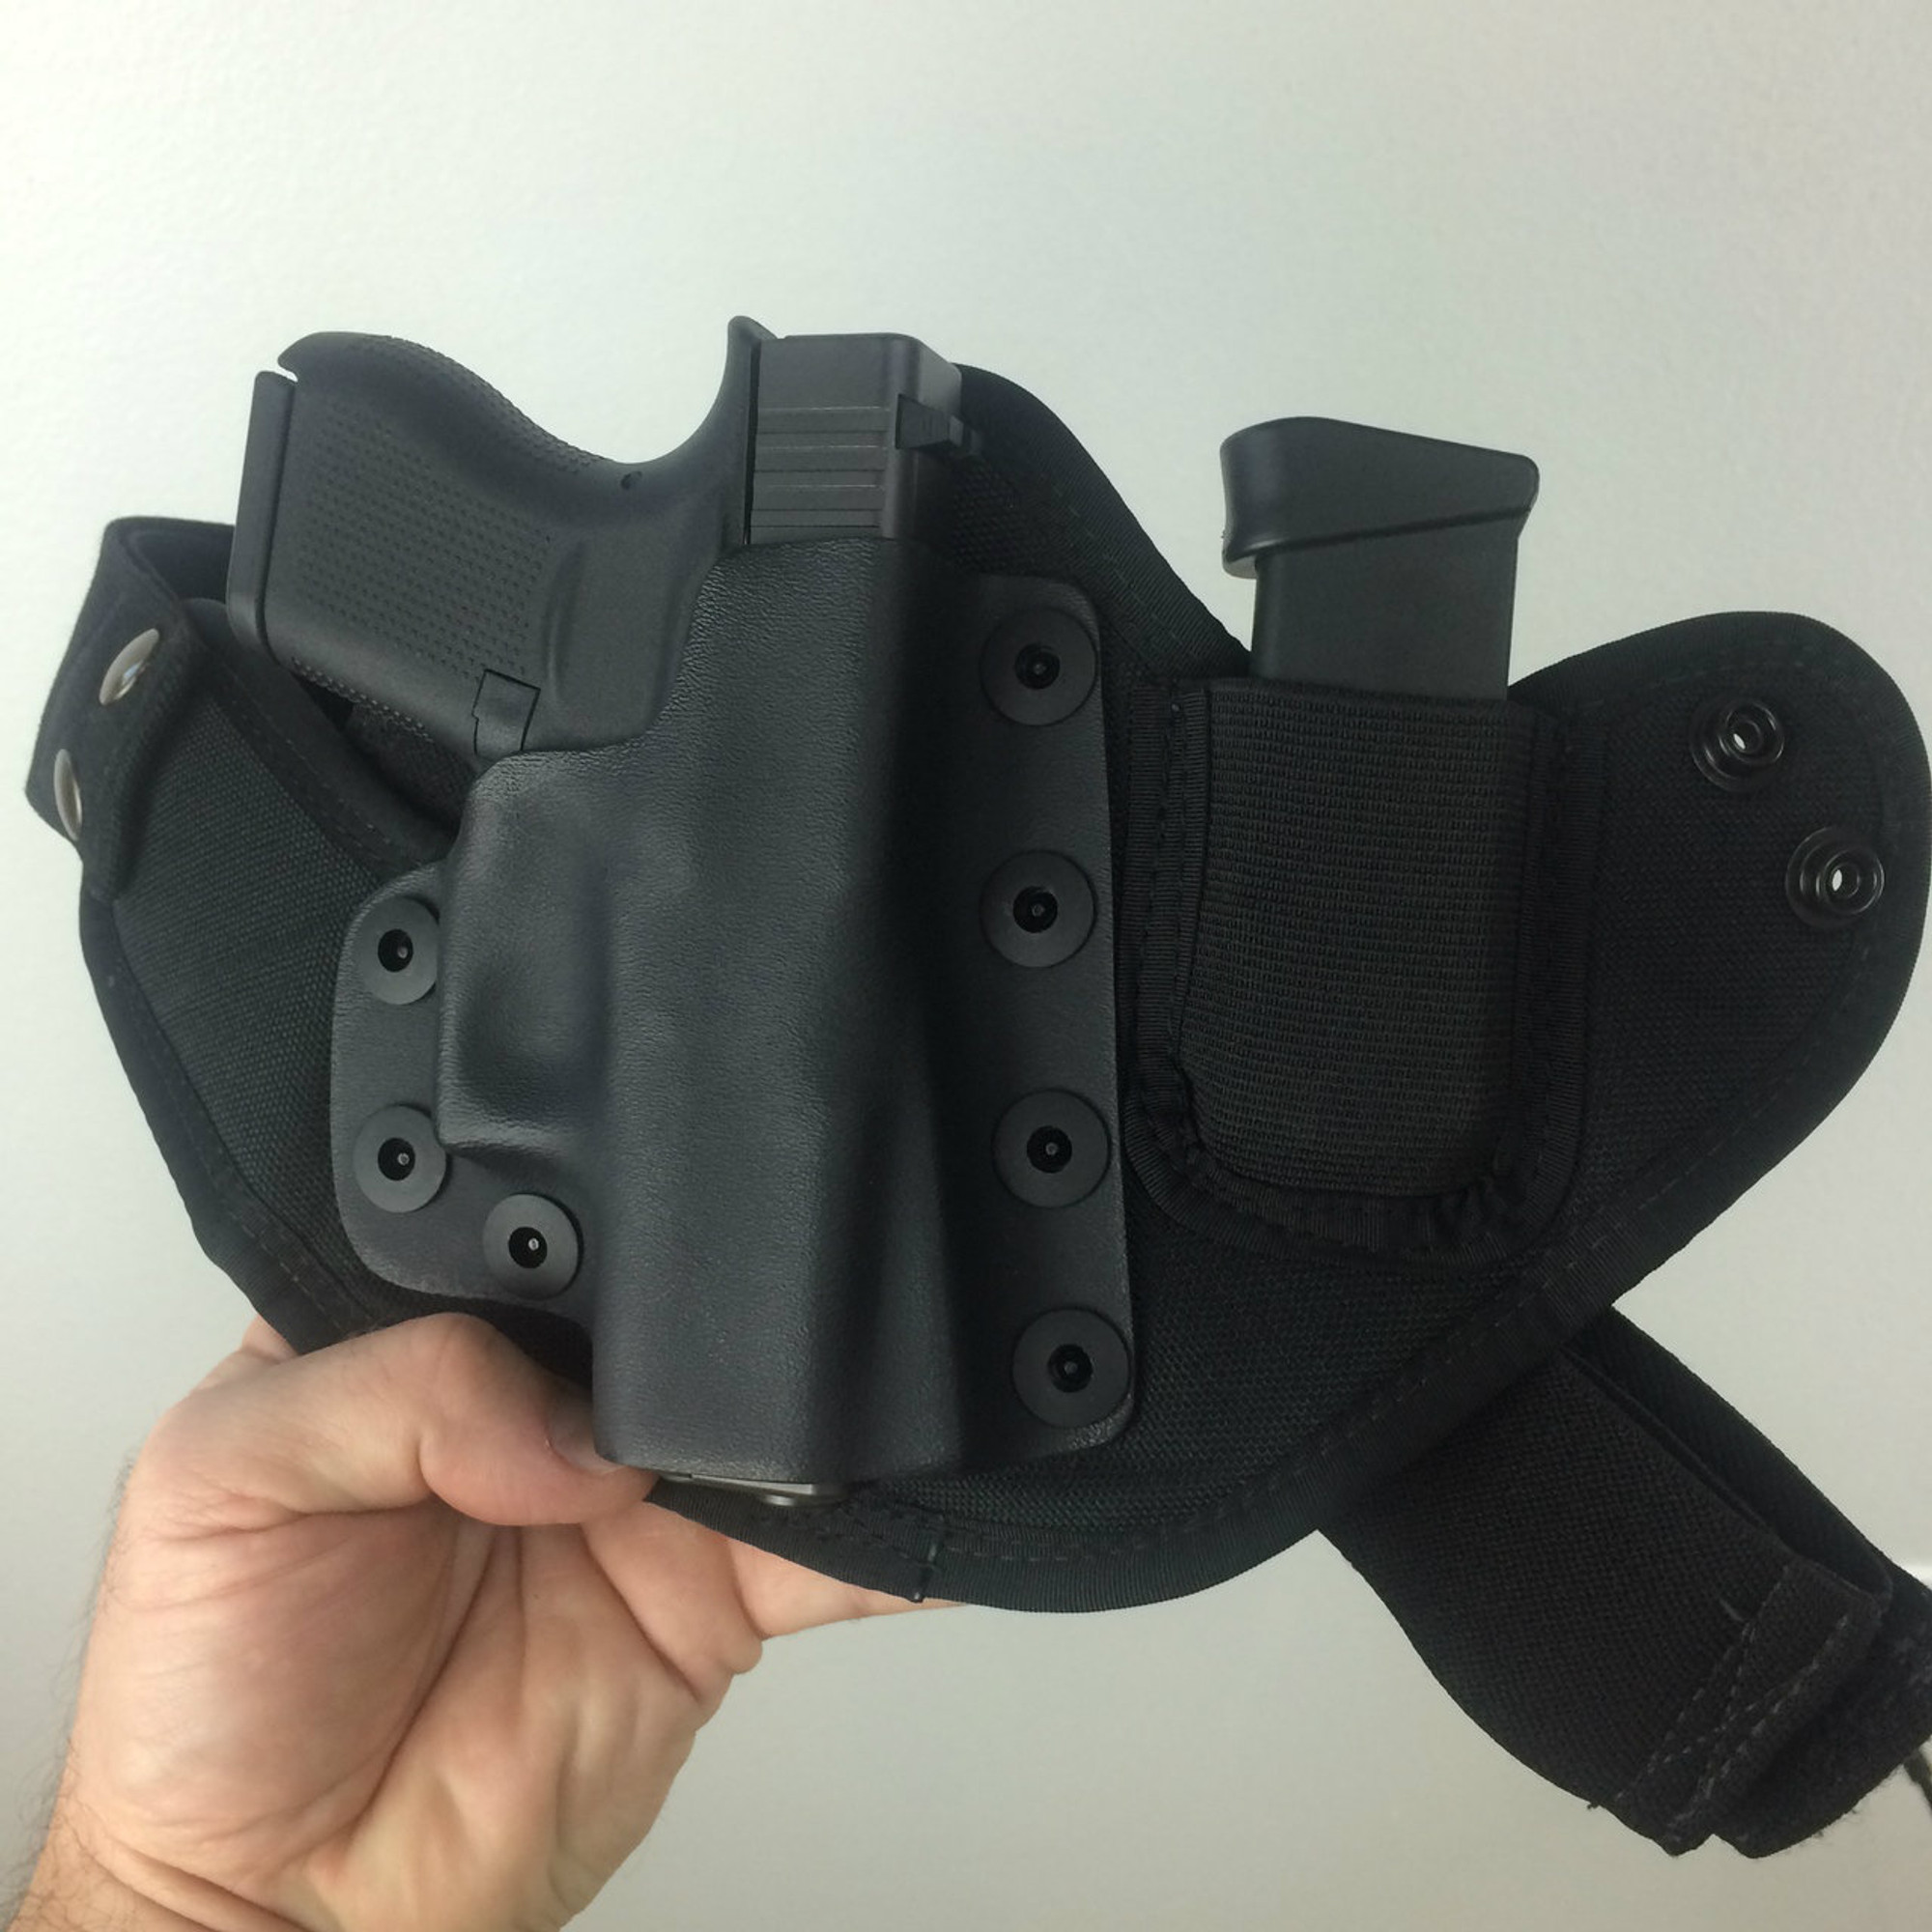 Combat Appendix Carry IWB Concealed Carry Holster